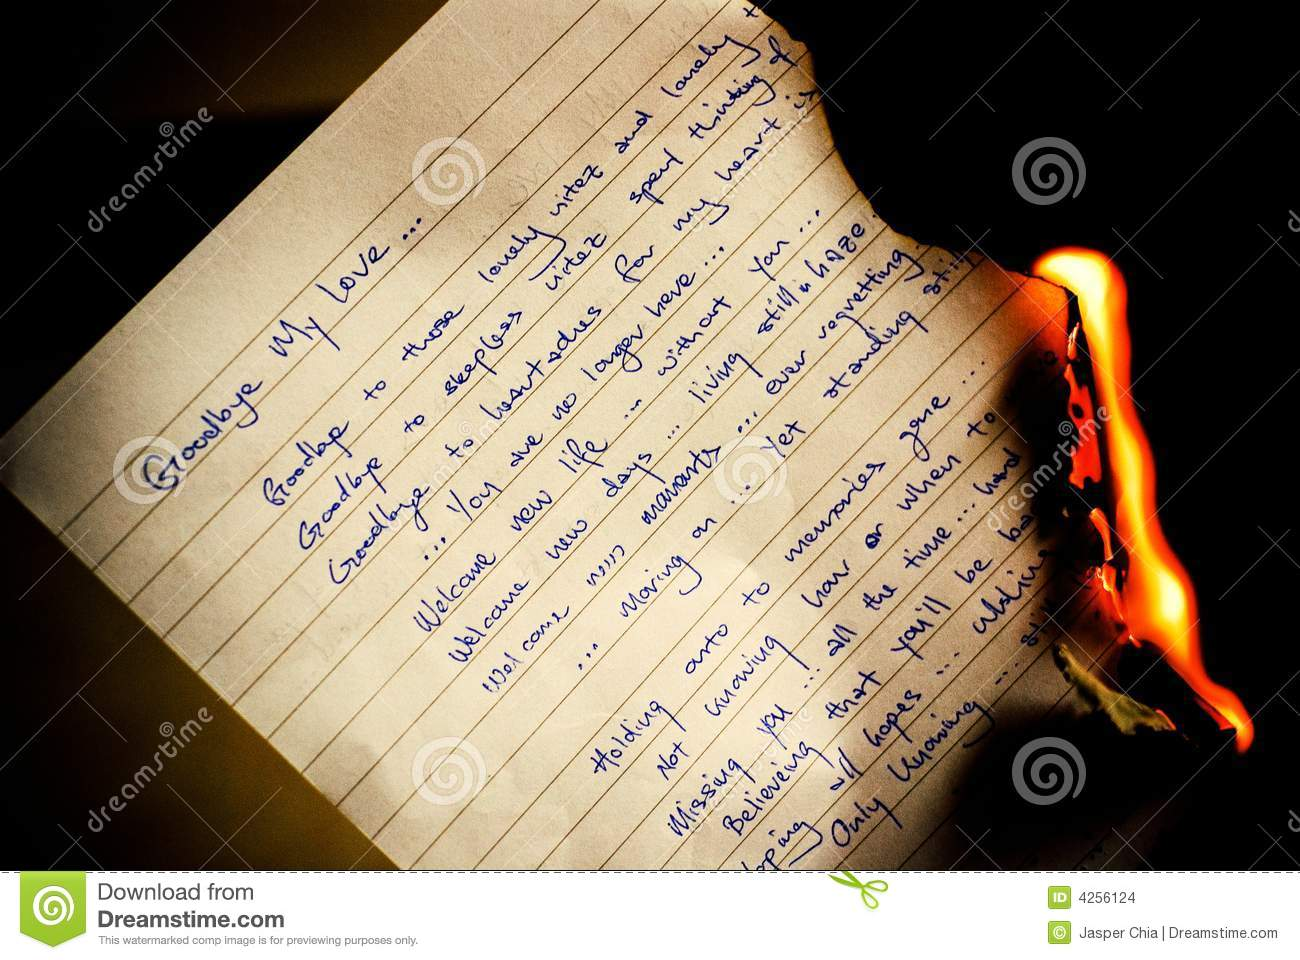 Goodbye Letter Burning Images Image 4256124 – Goodbye Letter